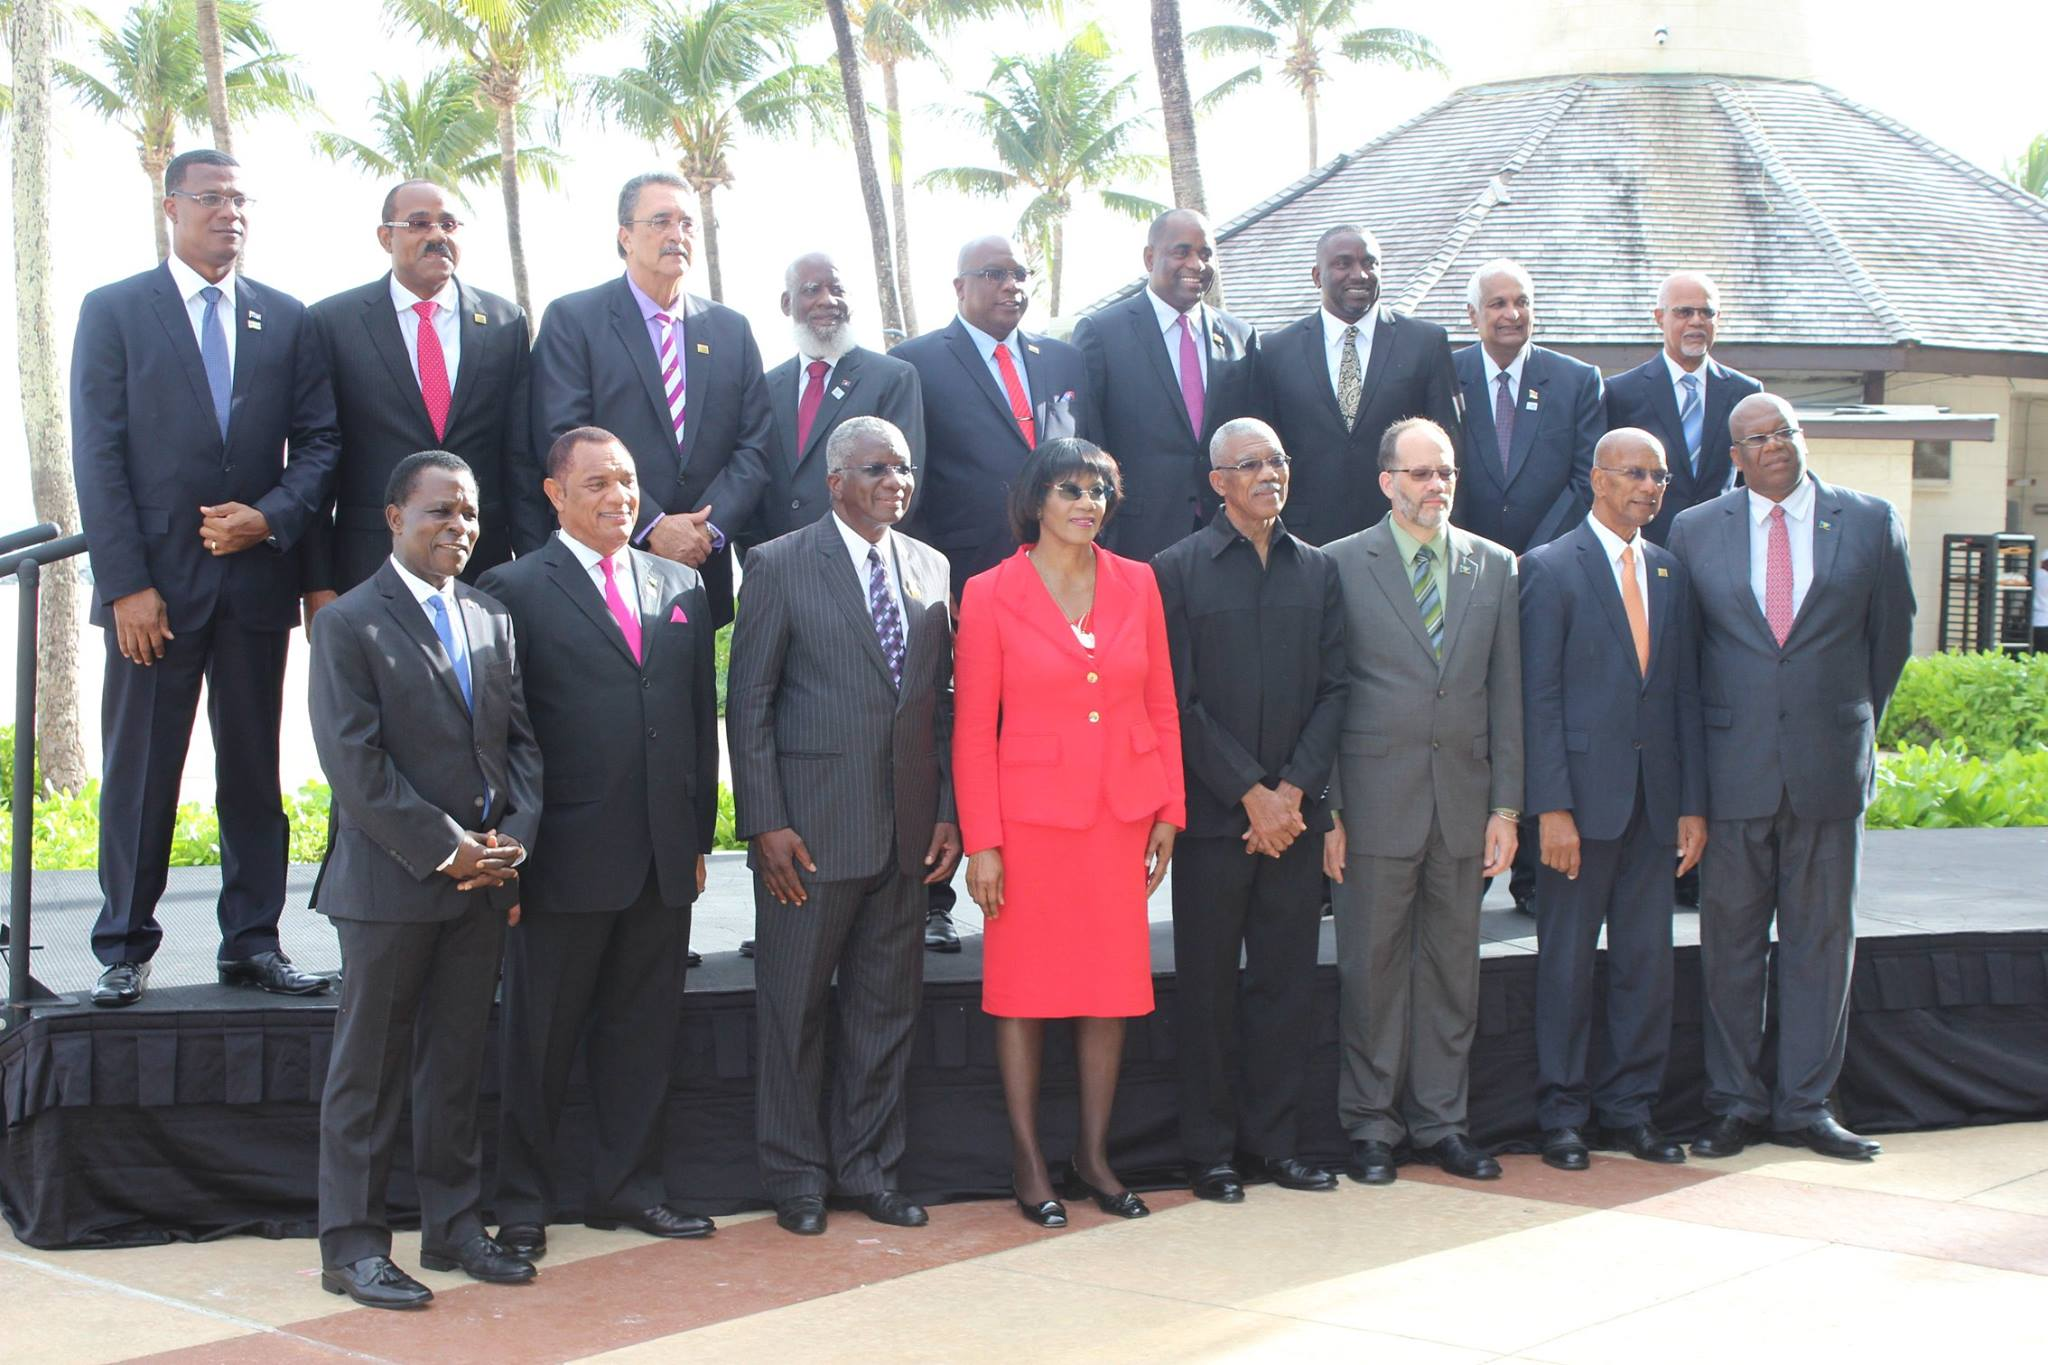 The official photograph of Heads of Government at the 36th Meeting of the Conference of Heads of Government of CARICOM